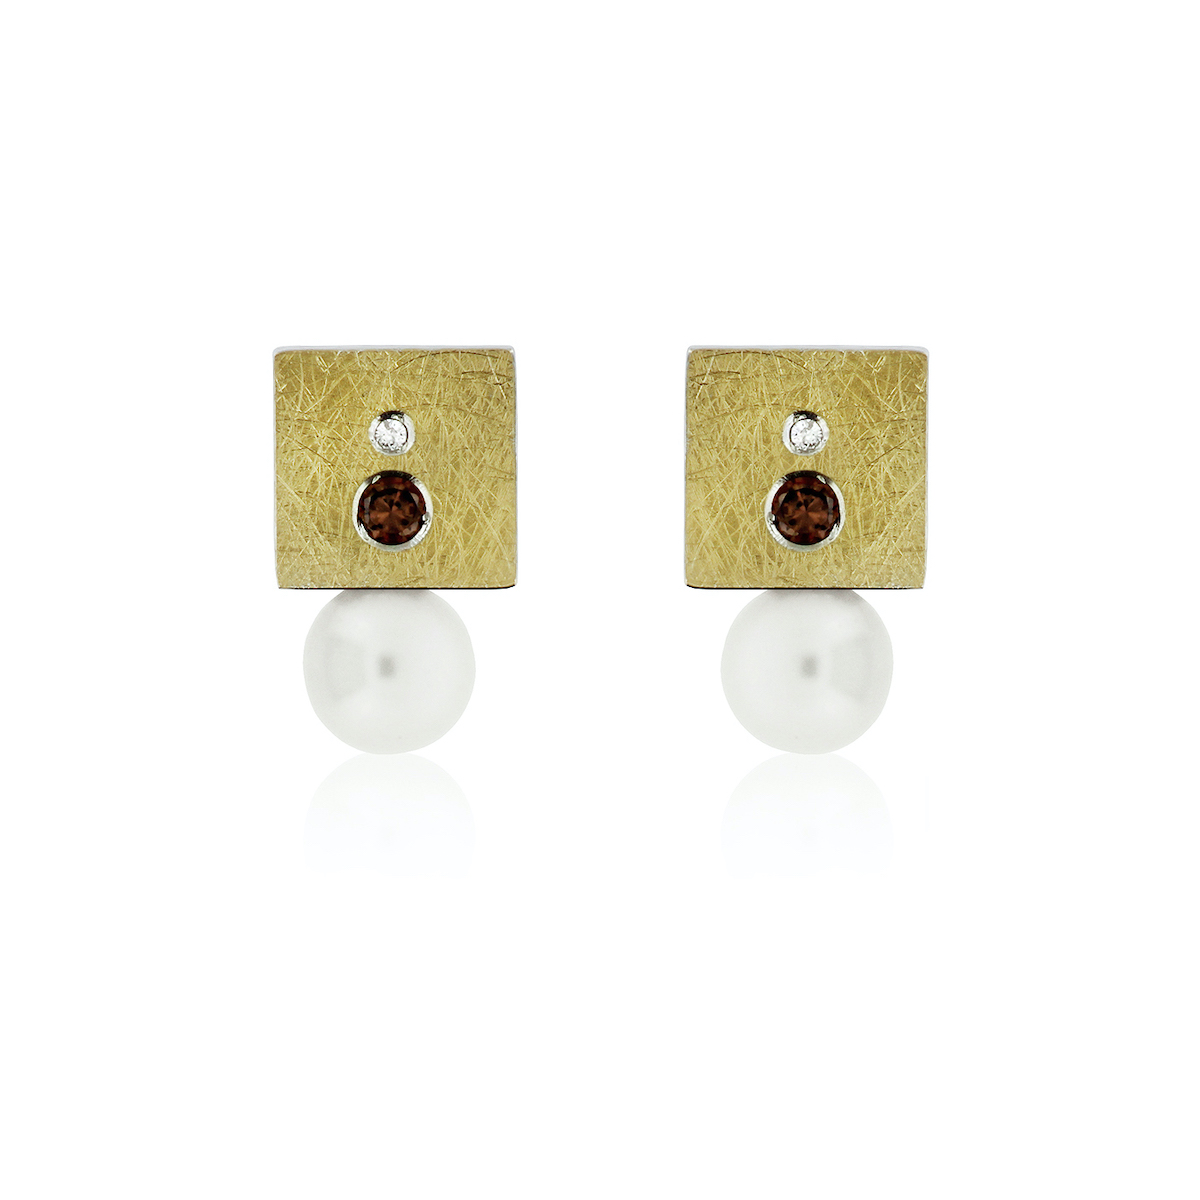 SILVER & GOLD EARRINGS w/ DIAMONDS, COLORED STONE & PEARL. E1828DP